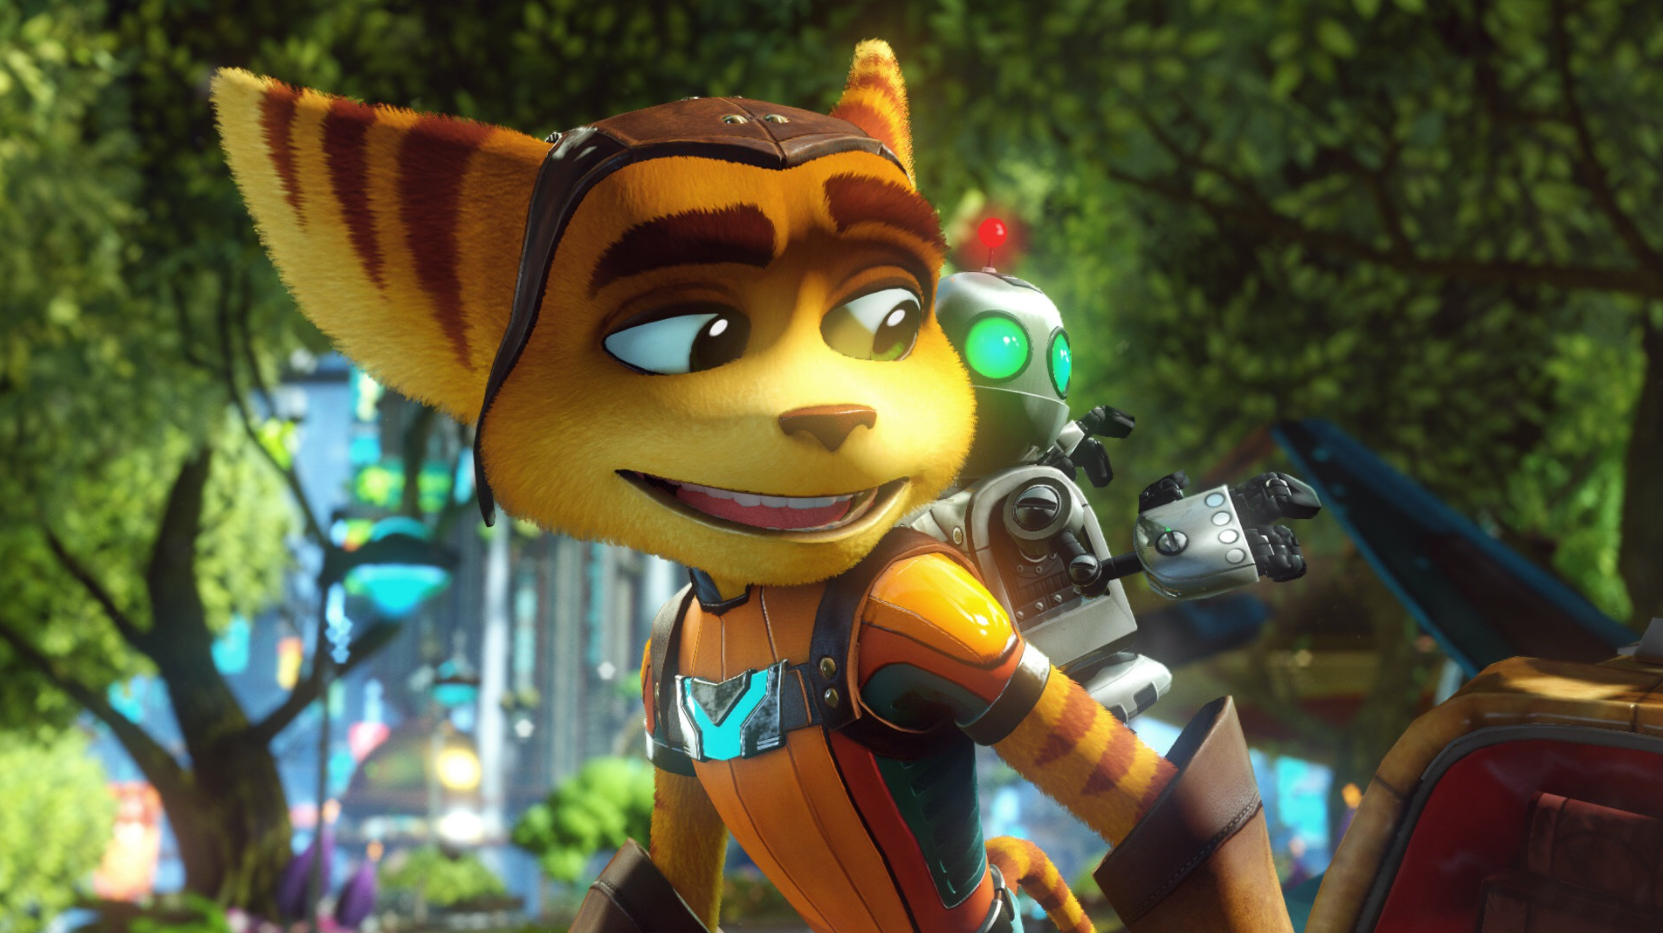 ratchet-clank-to-get-60-fps-update-for-ps5-in-april